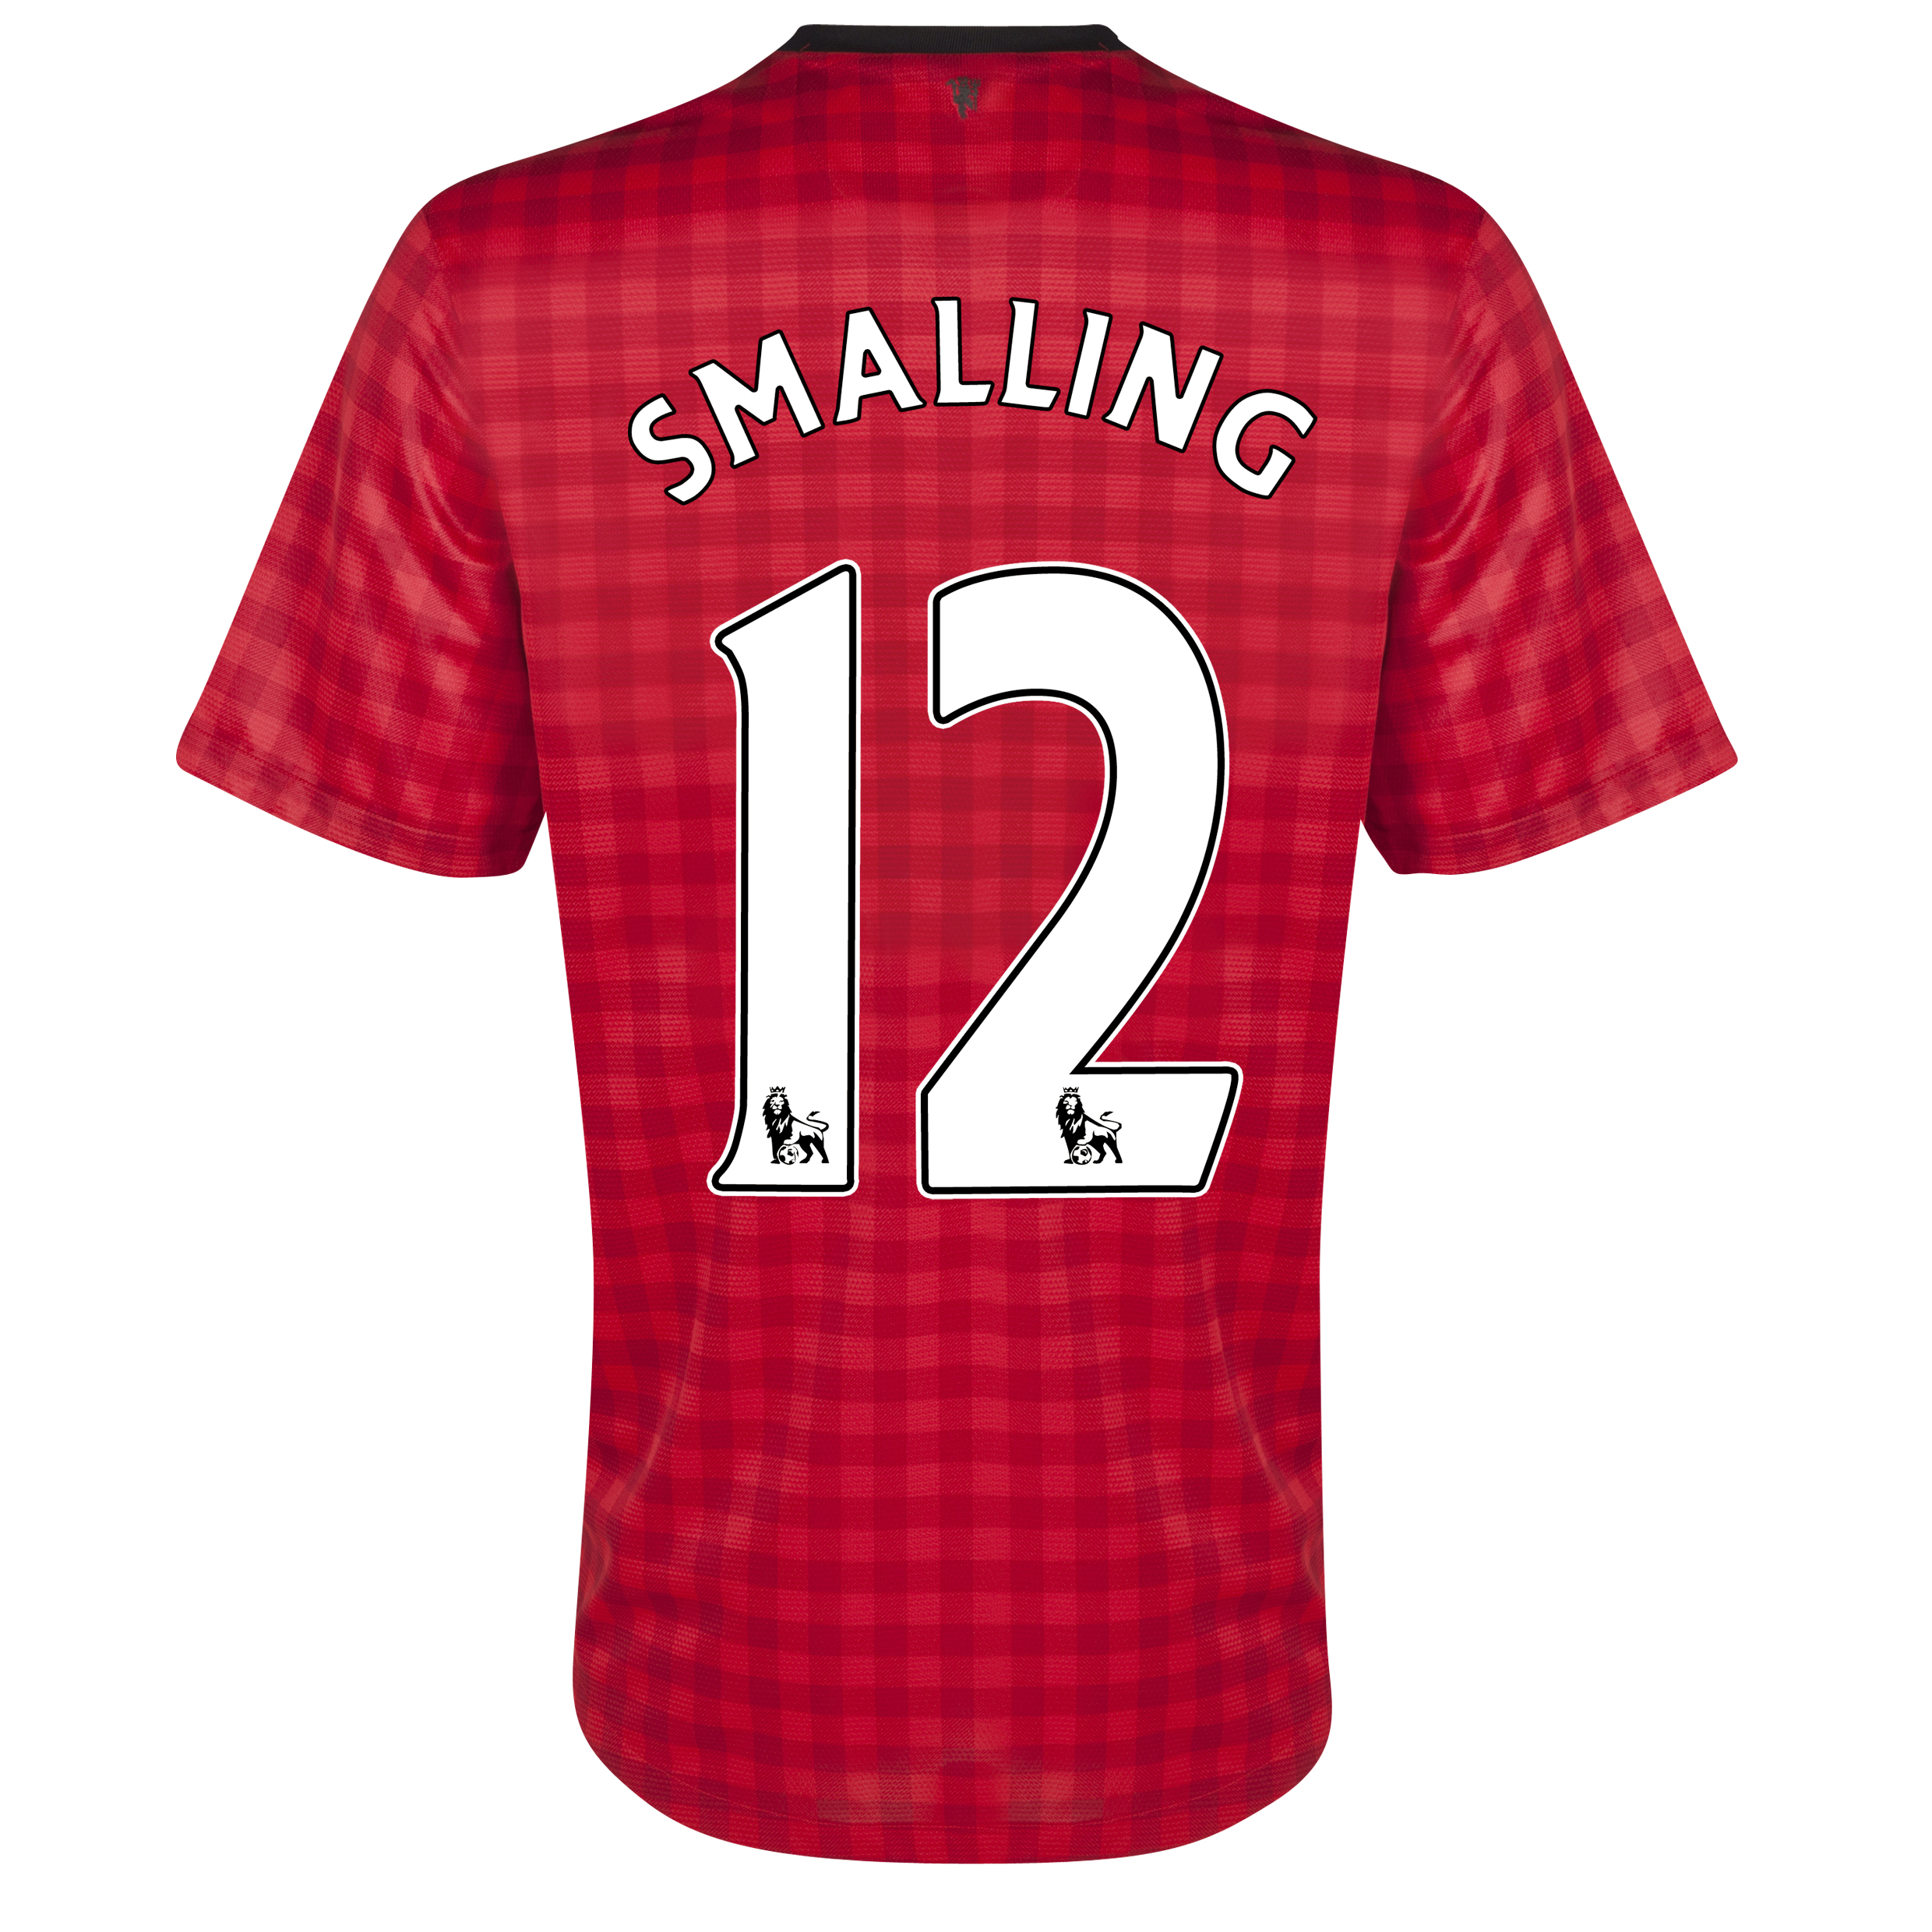 Manchester United Home Shirt 2012/13  - Youths with Smalling 12 printing